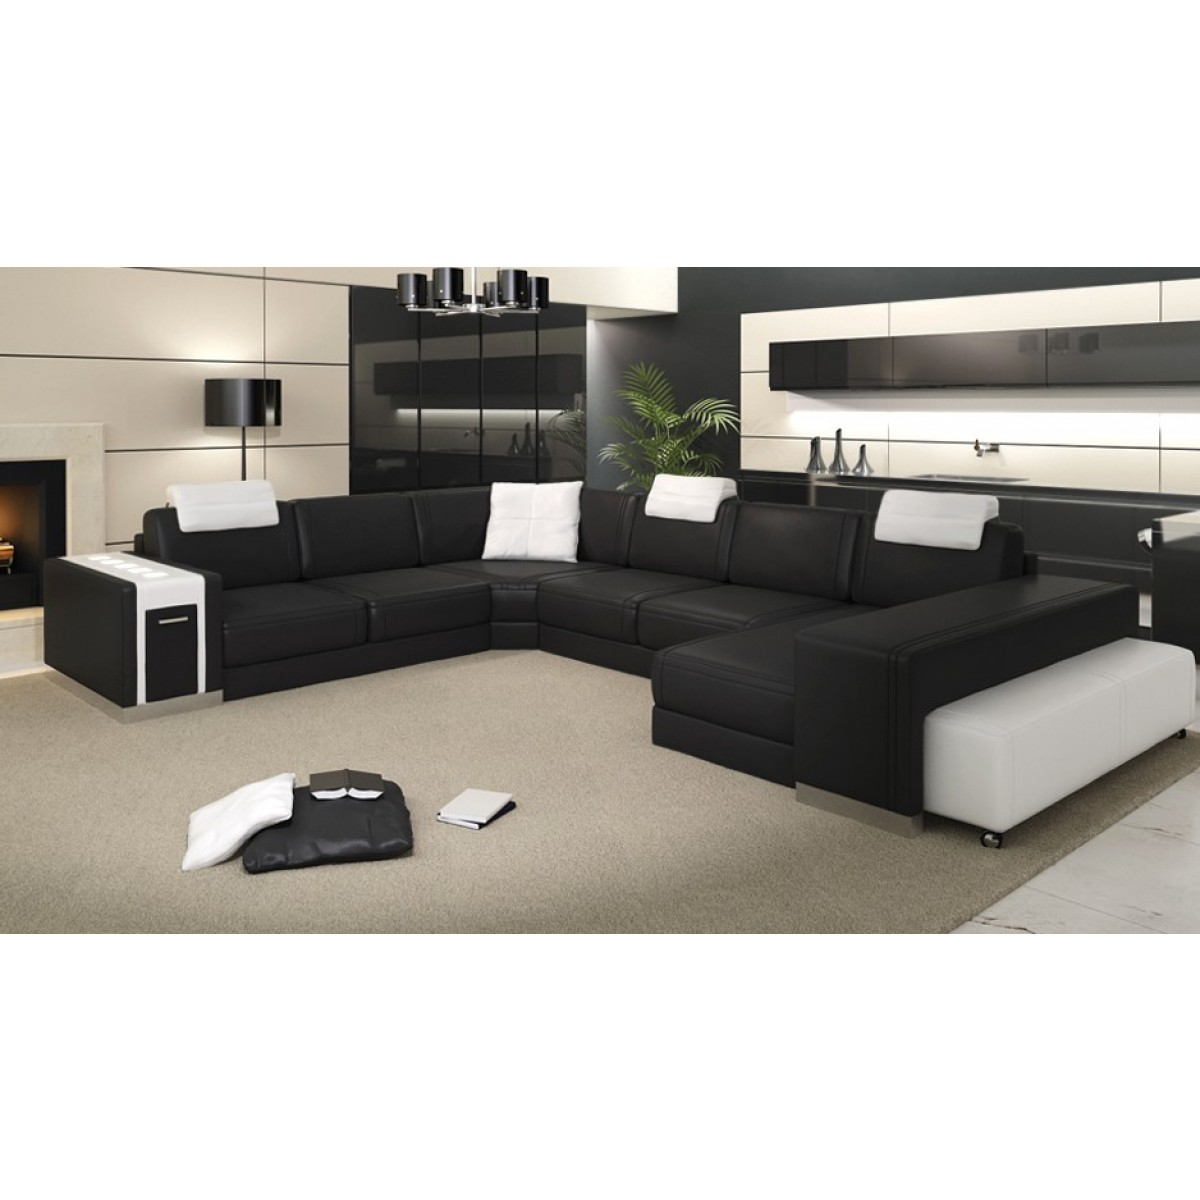 canap d 39 angle panoramique en cuir sao paulo avec clairages pouf 2 places. Black Bedroom Furniture Sets. Home Design Ideas